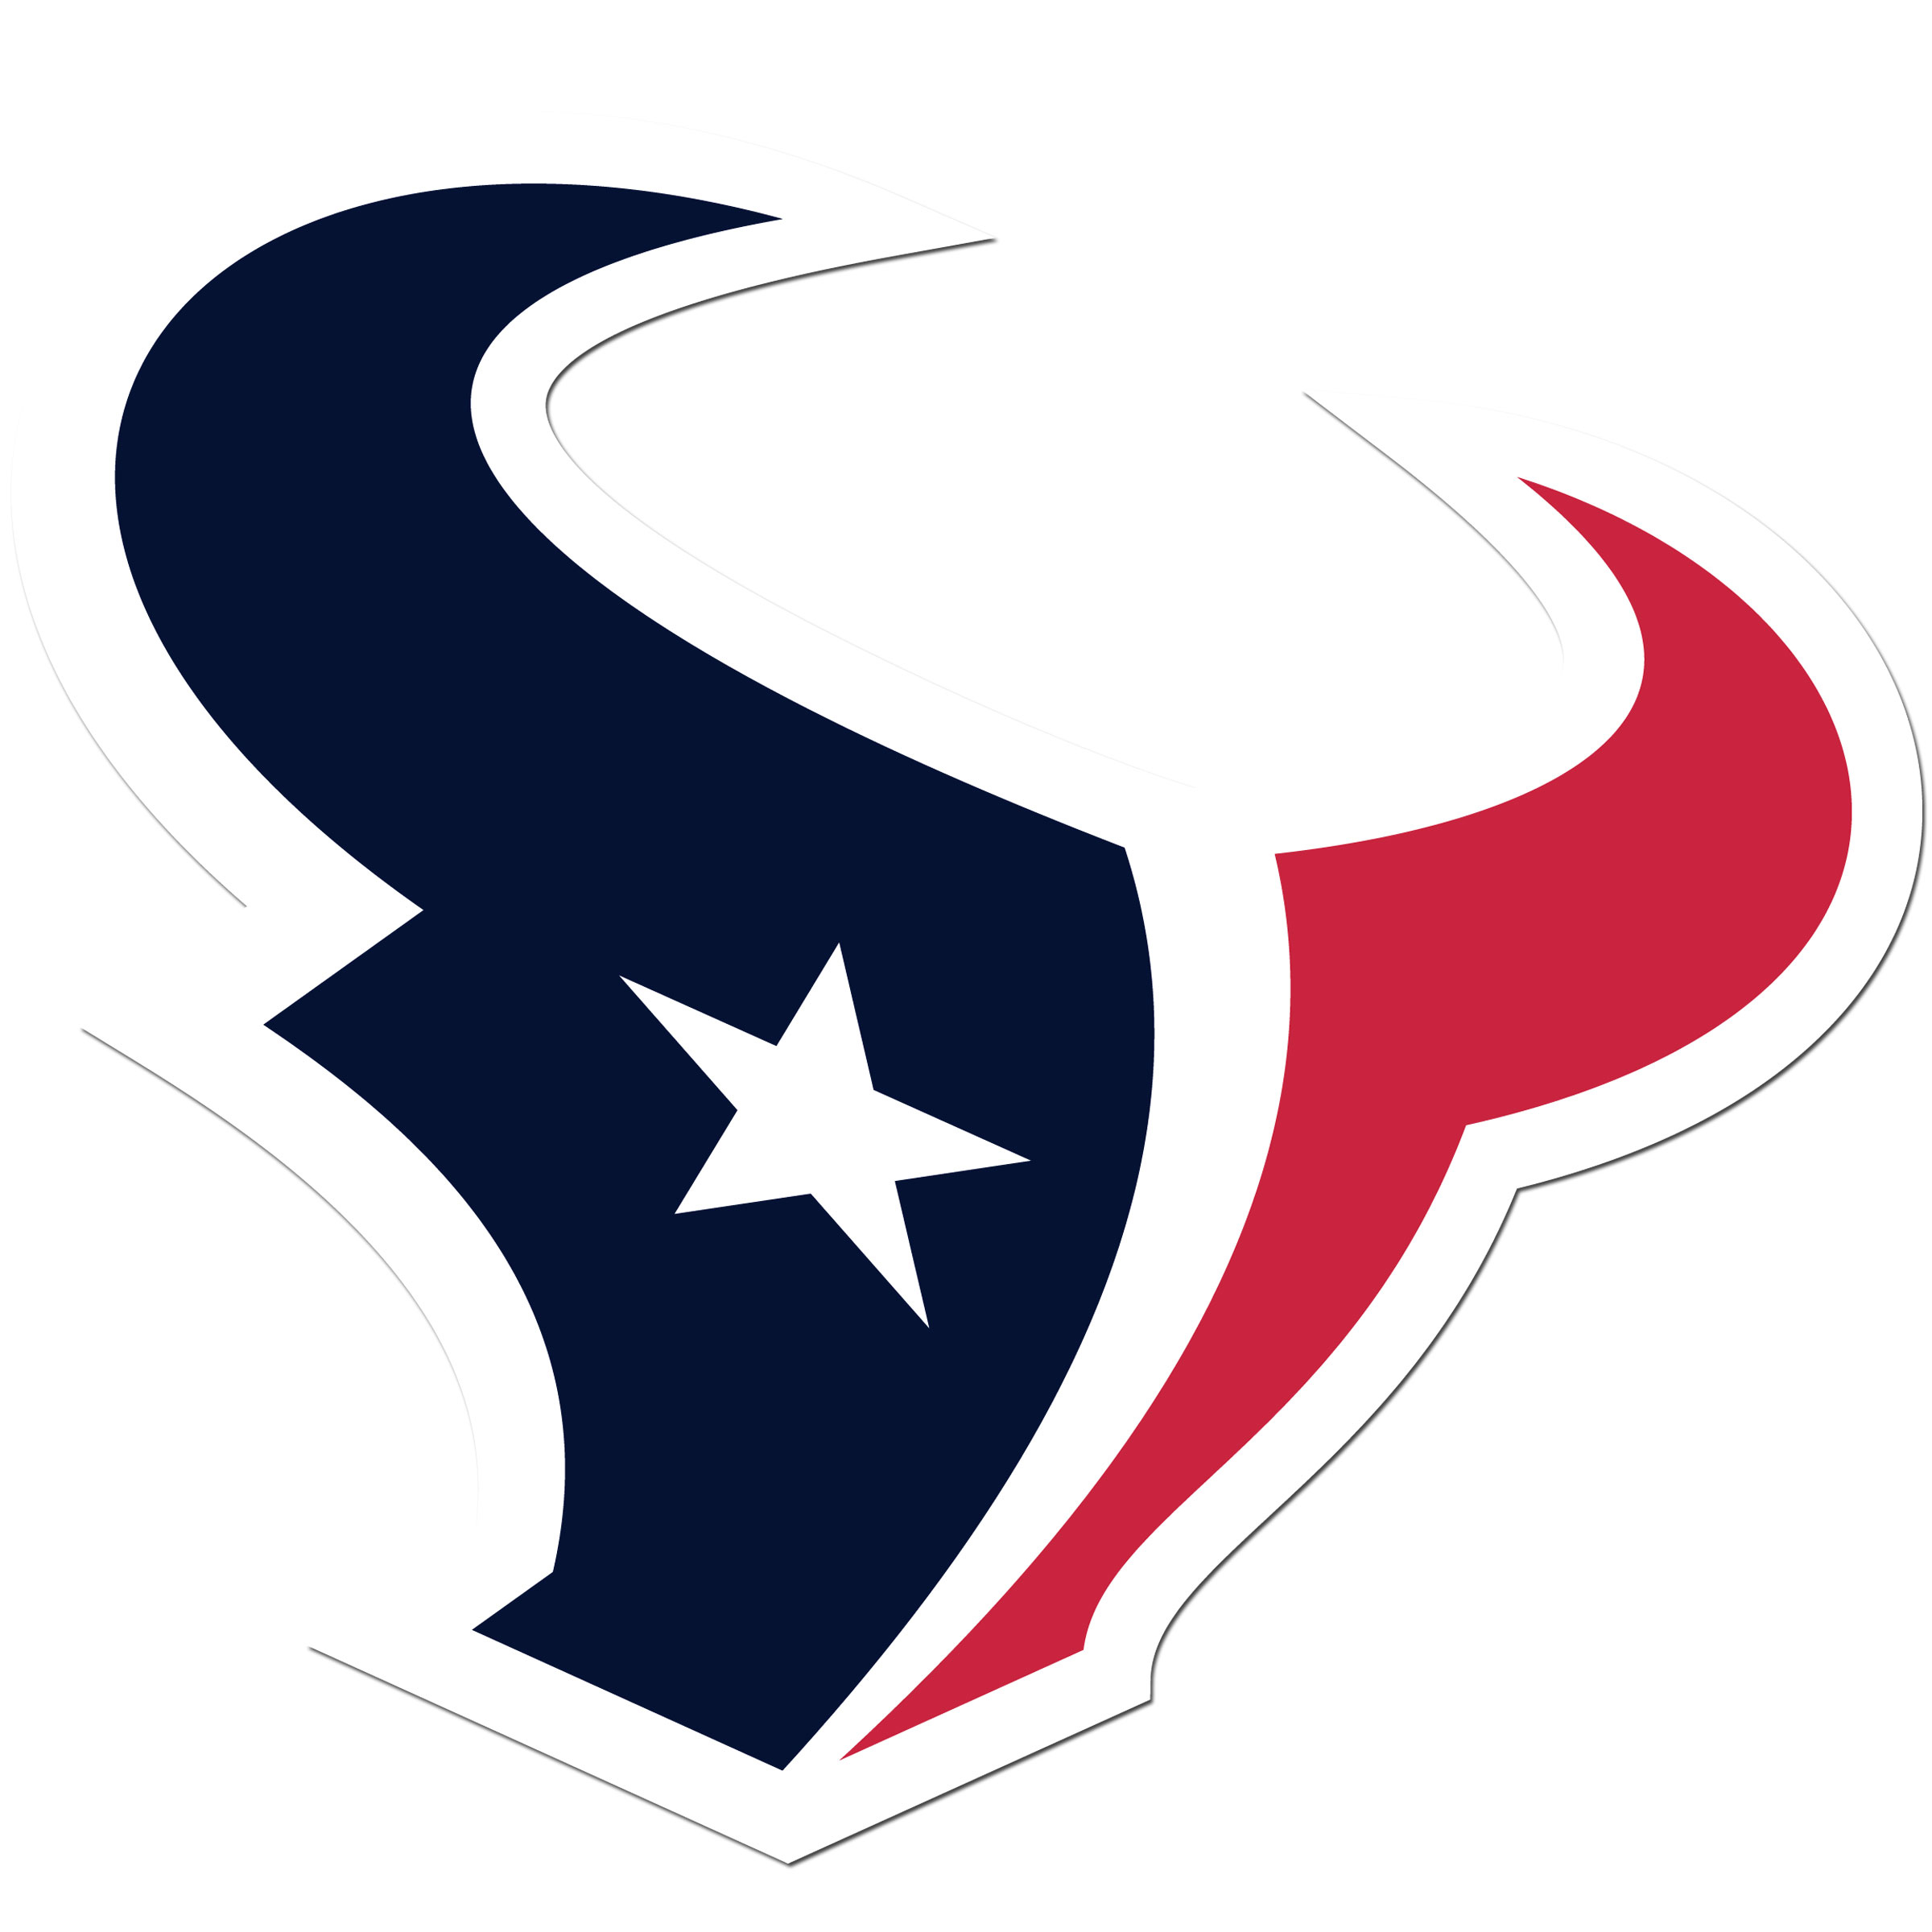 Houston Texans 8 inch Auto Decal - This bold, 8 inch Houston Texans is a great way to show off your team pride! The low tack vinyl decal is easily positioned and adjusted to make sure you get that logo in just the right spot on your vehicle. Designed to be used on the outside of the window.